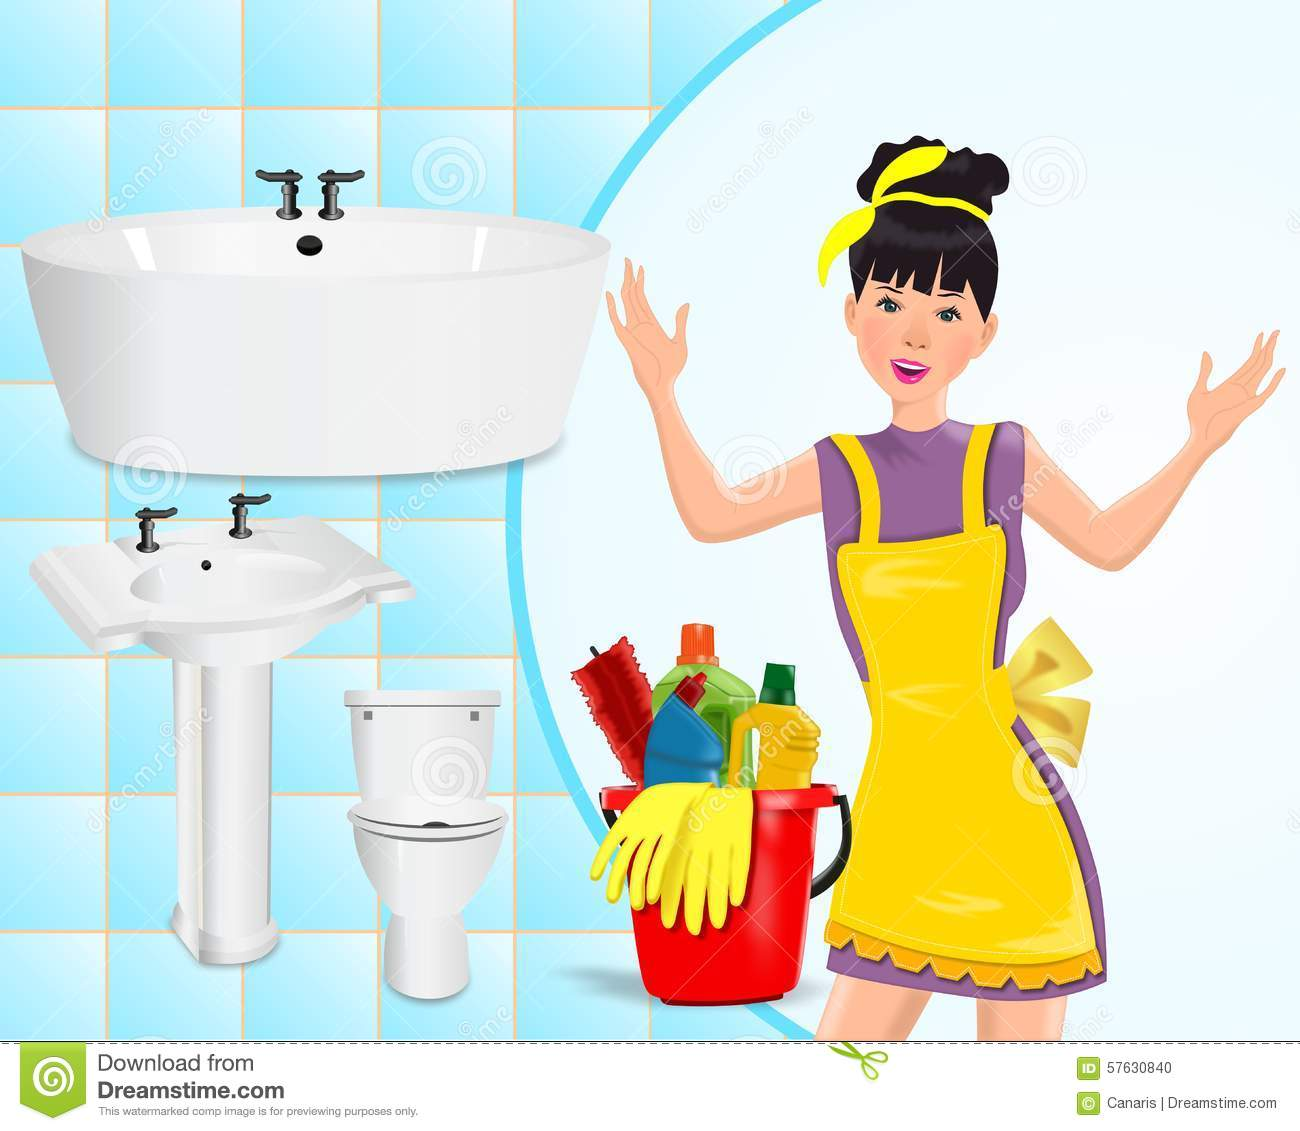 Cleaning concept stock illustration. Image of bathroom ...